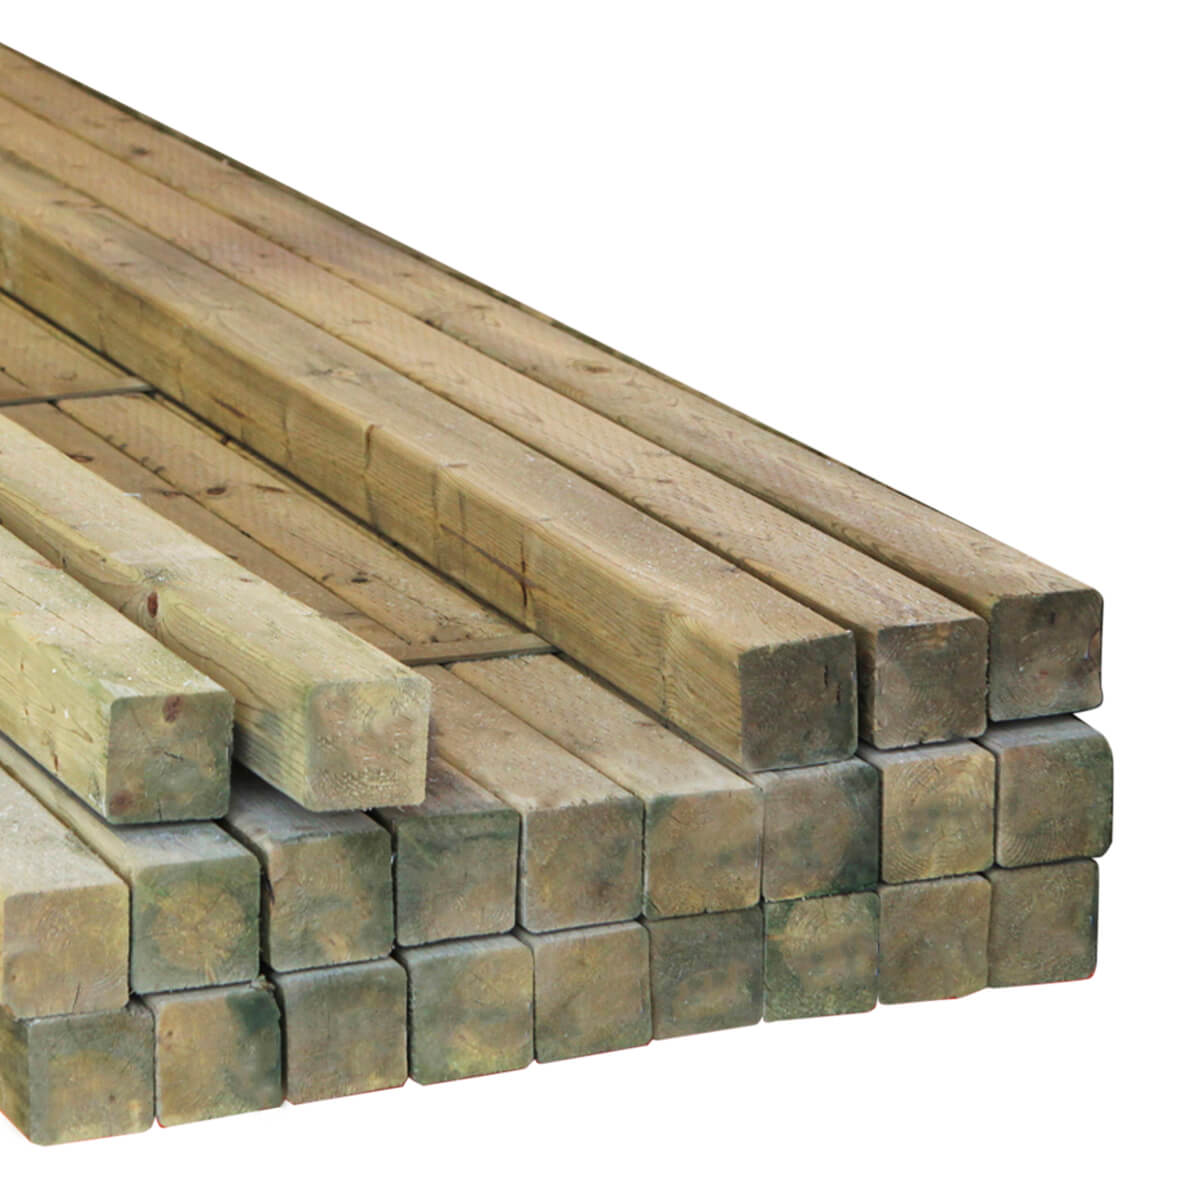 Rough CCA Treated Timbers - 3 x 12 x 16'